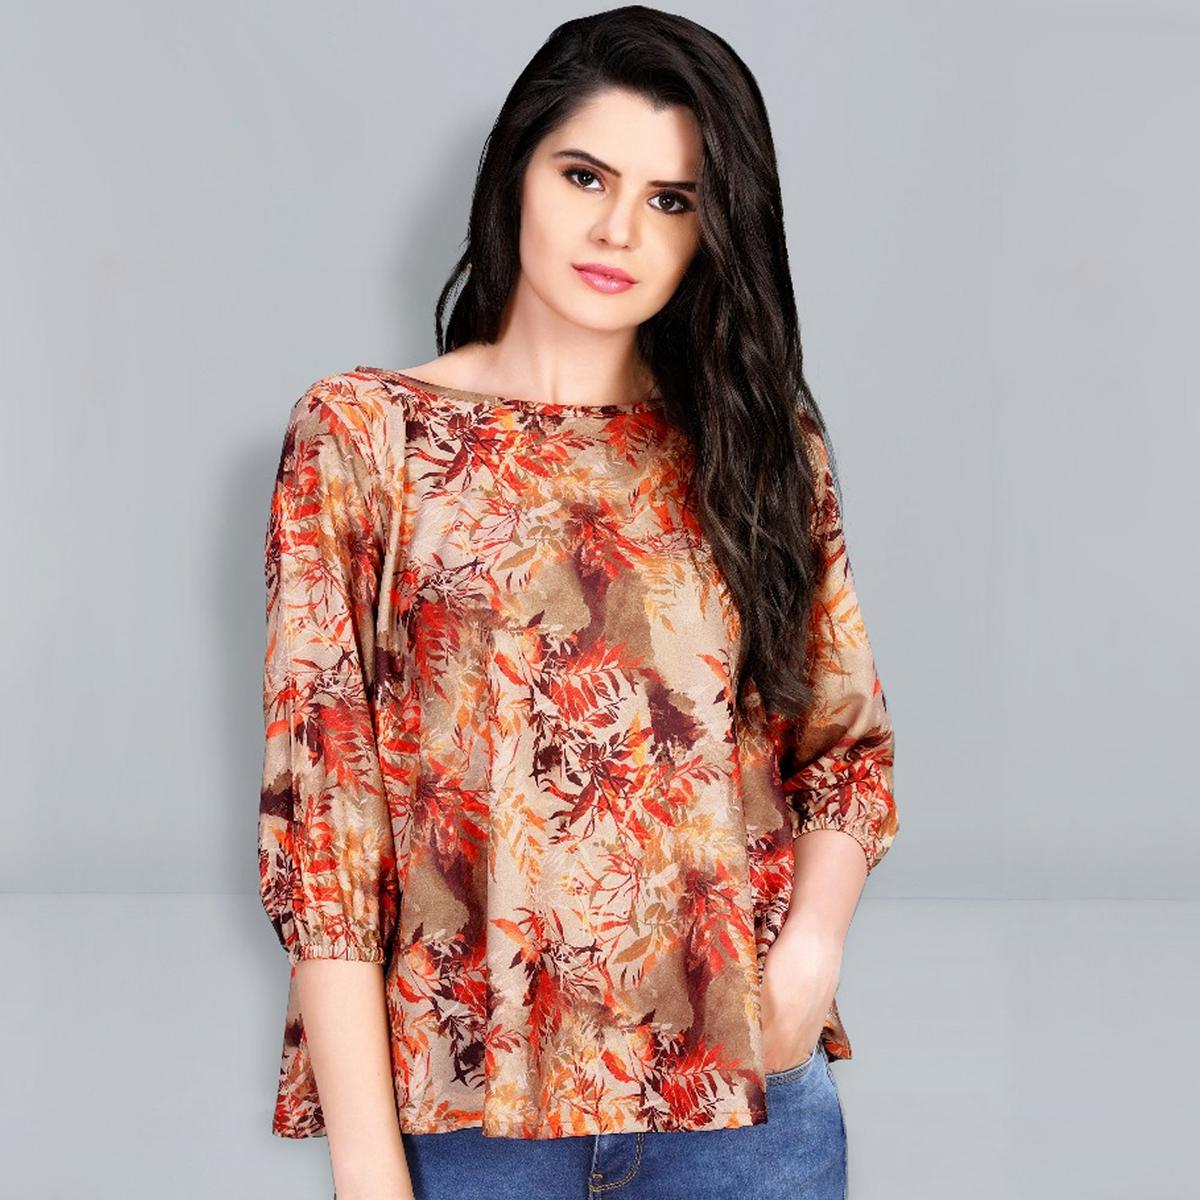 Stunning Peach - Orange Colored Digital Printed Fancy Cotton Top